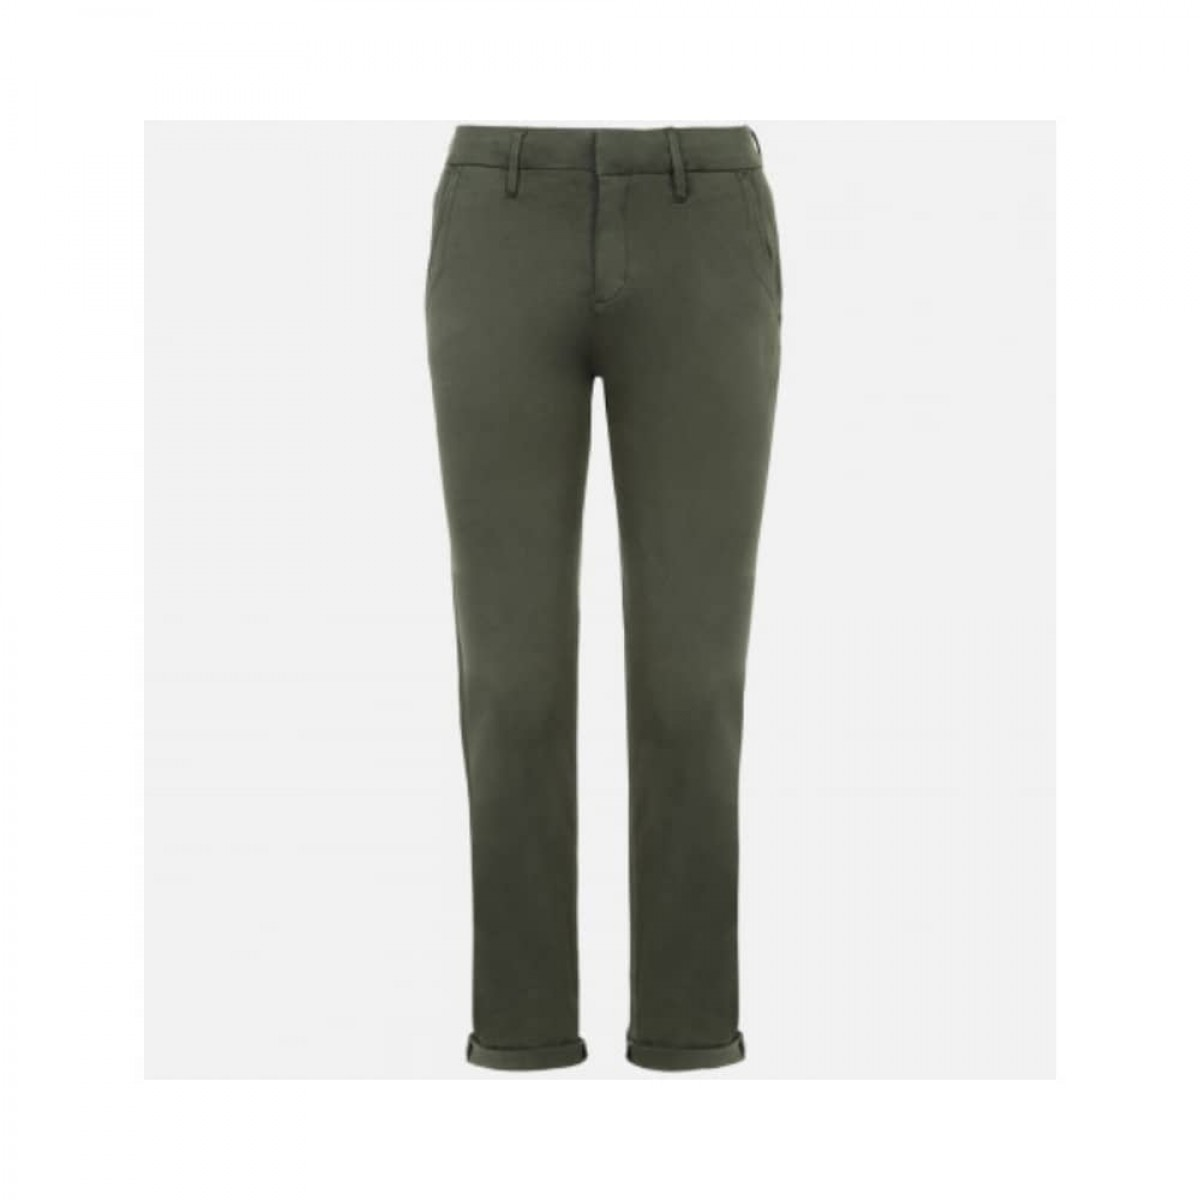 sandy 2 basic chino - army - front